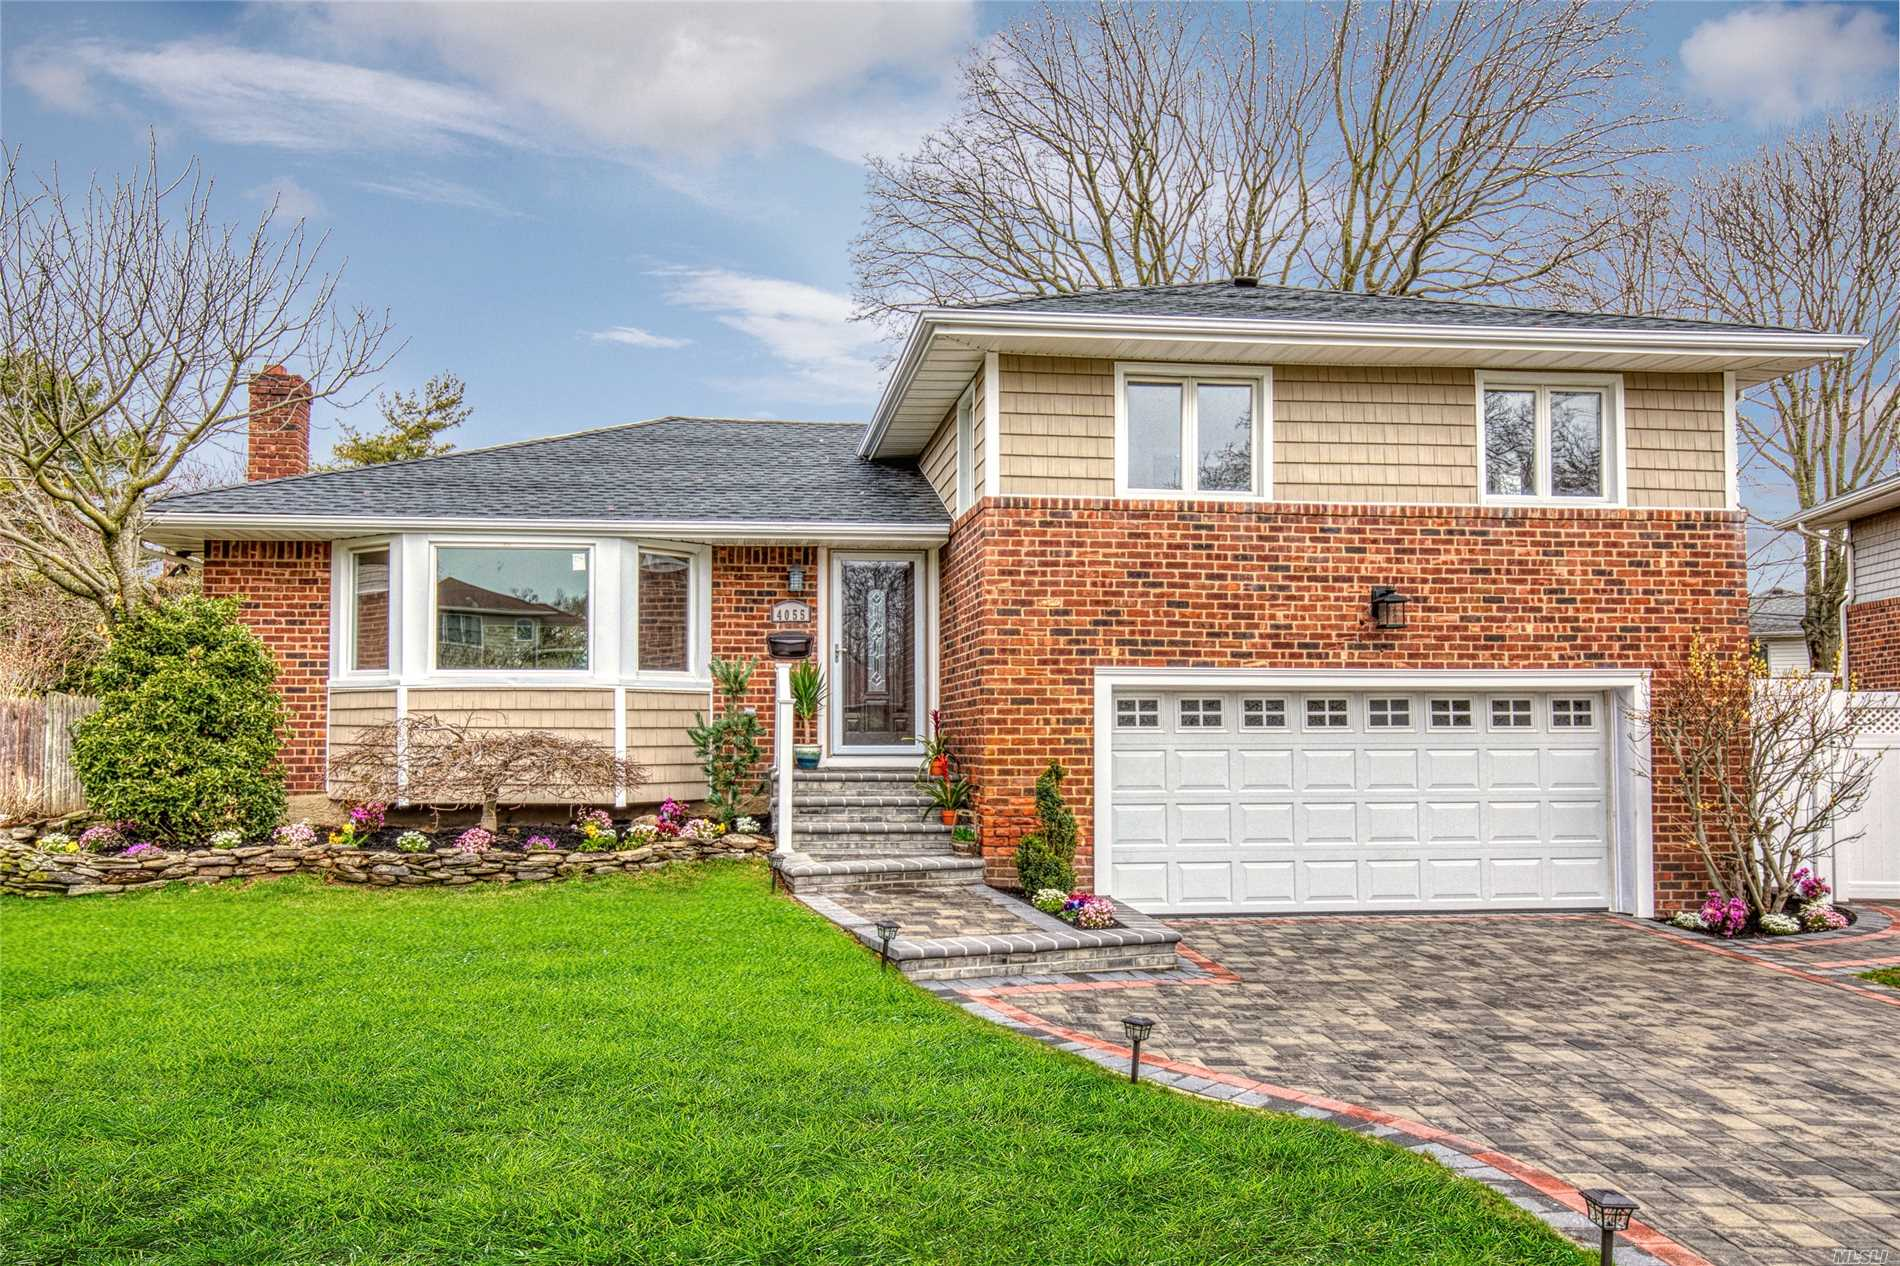 Amazing, designer inspired split located on a beautiful cul-de-sac. All renovated featuring open concept with vaulted ceilings, custom moldings, chefs kitchen, electric wall fireplace, gas heating, CAC, 200 amp electric, 2 car garage, finished basement, master suite with full bath, gorgeous paver driveway and front stoop, professional landscaping, private back yard with deck and paver patio. Truly just a wonderful home with amazing finishing touches.  Move in relax and enjoy for Summer!